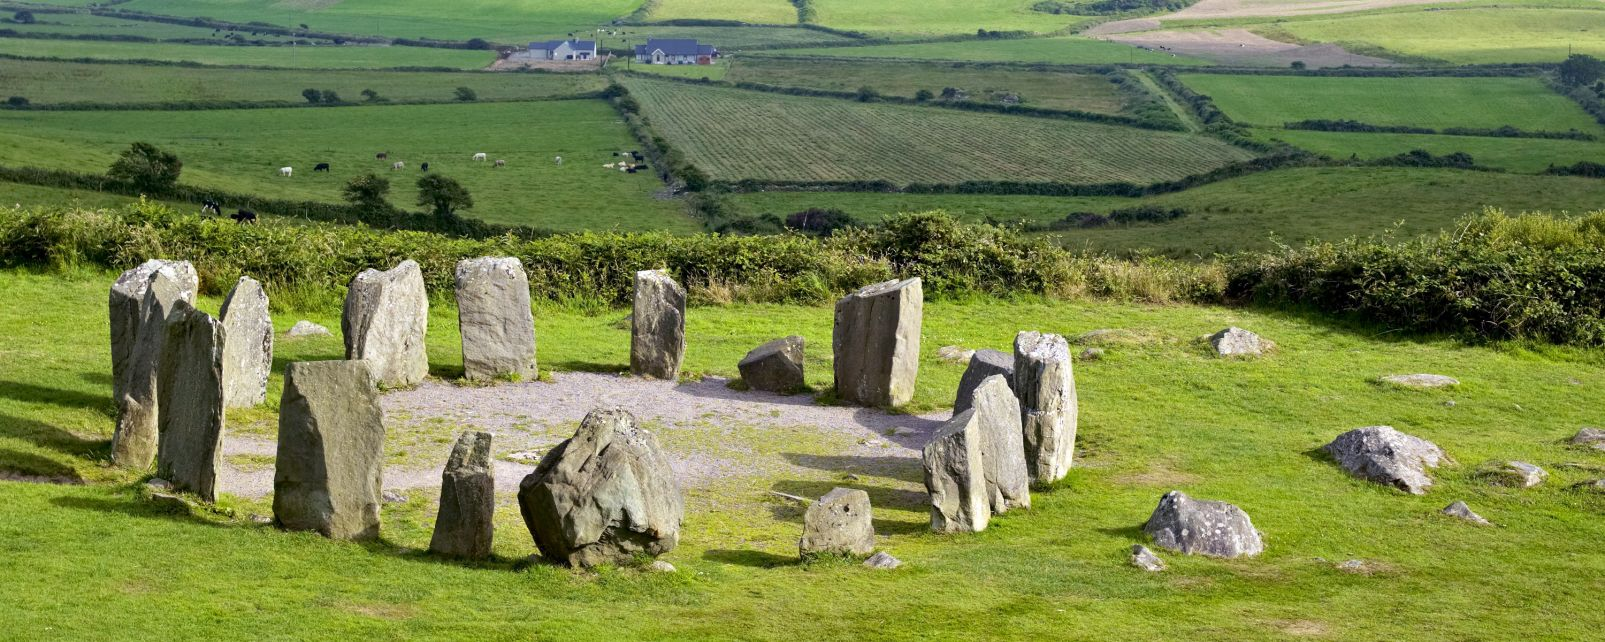 The Megaliths Ireland